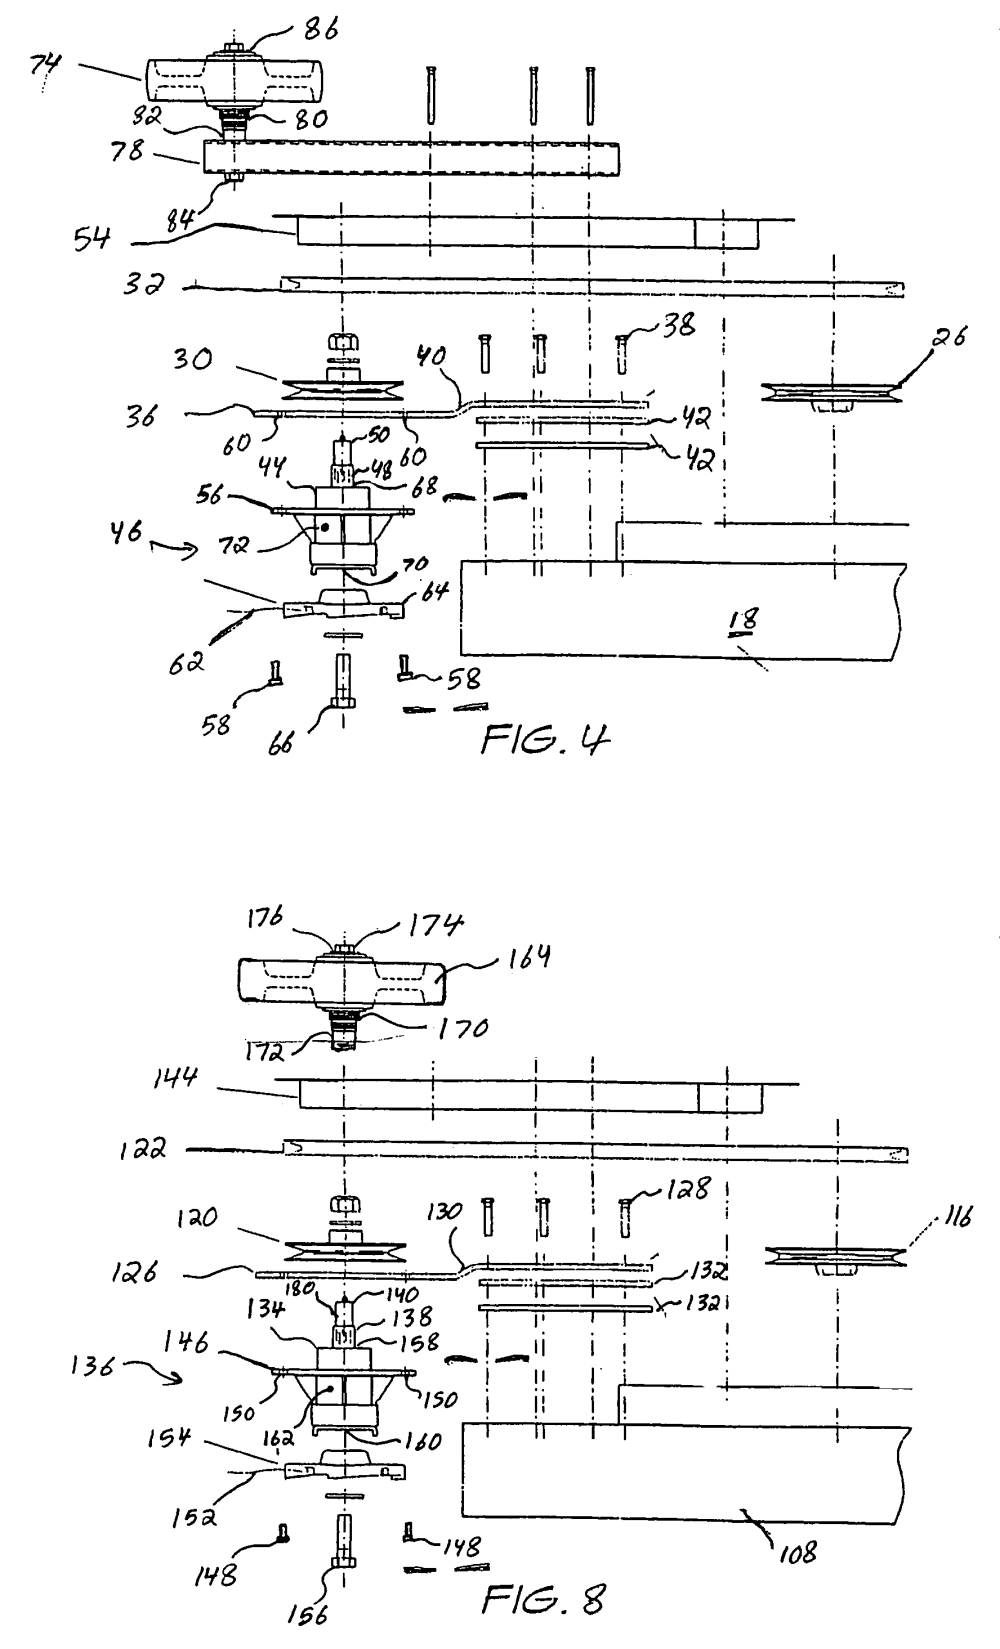 medium resolution of us7877971b1 mower trimmer combination for facilitating simultaneous mowing and edge trimming in a single pass google patents